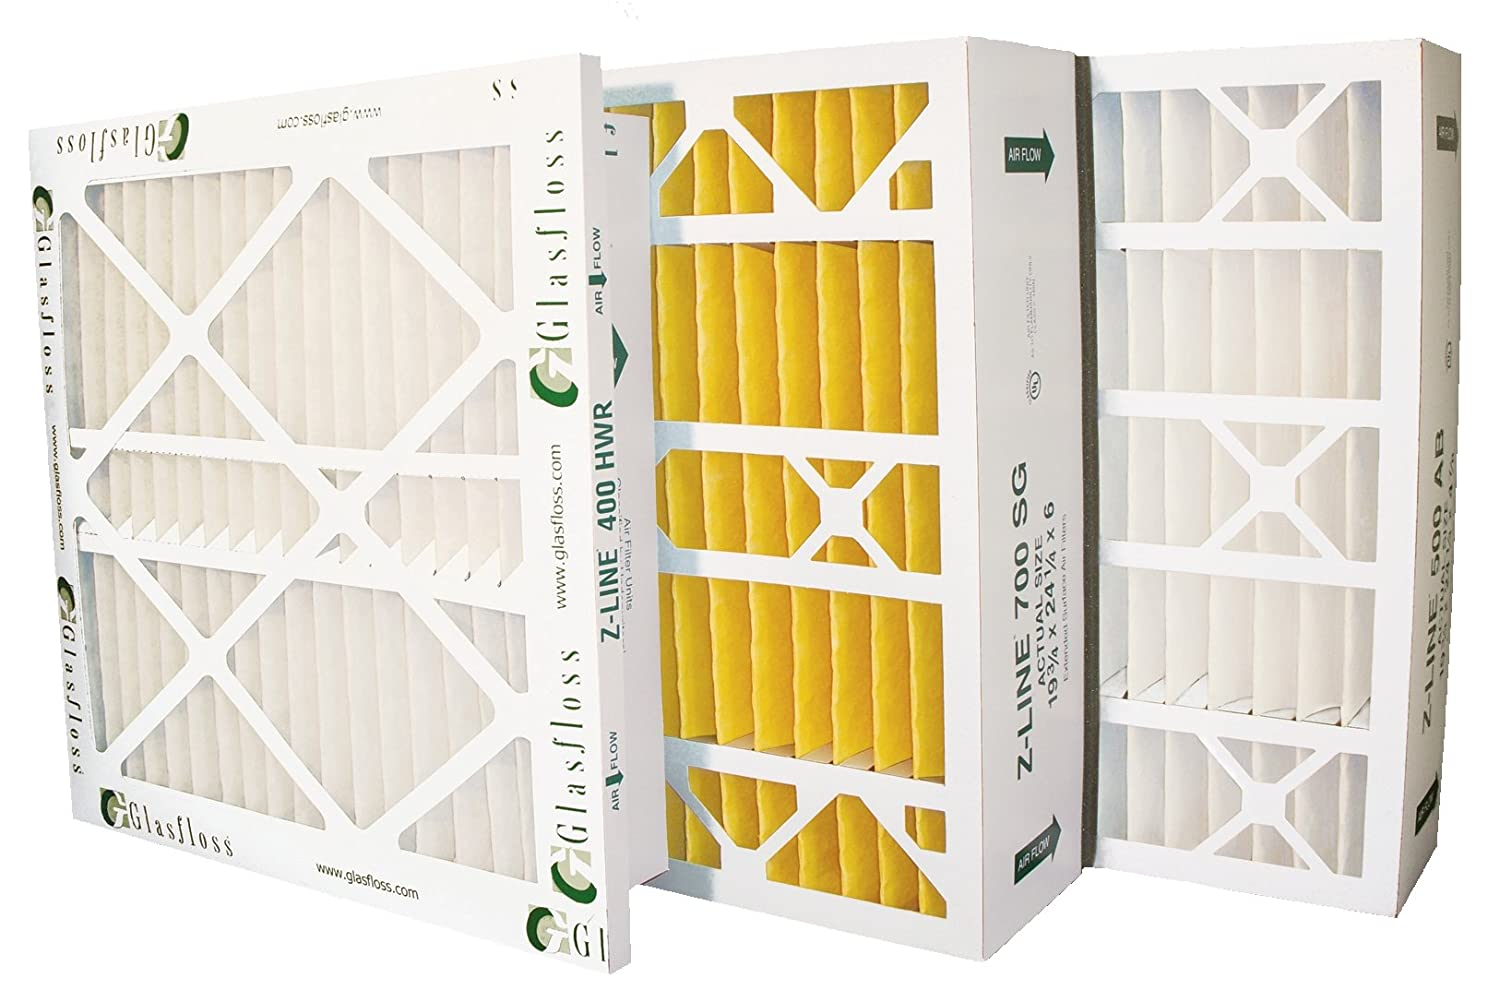 Glasfloss Industries HWR243042PK Z-Line Series 400 HWR MERV 10 Air Cleaner Replacement Filter Option 2-Case